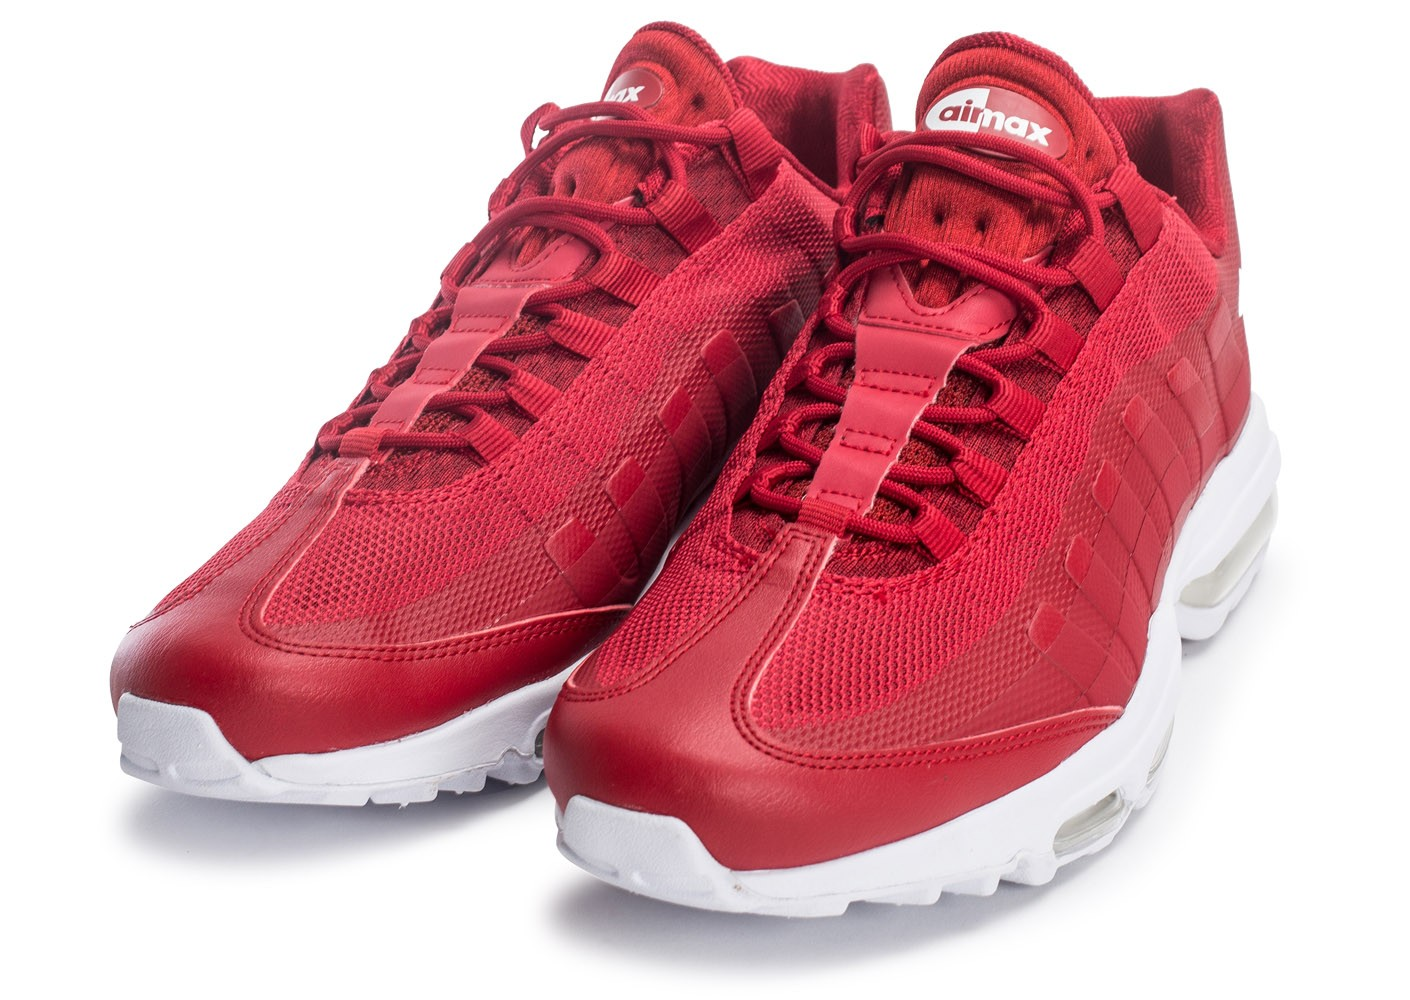 Nike Air Max 95 Ultra Se rouge - Chaussures Baskets homme - Chausport